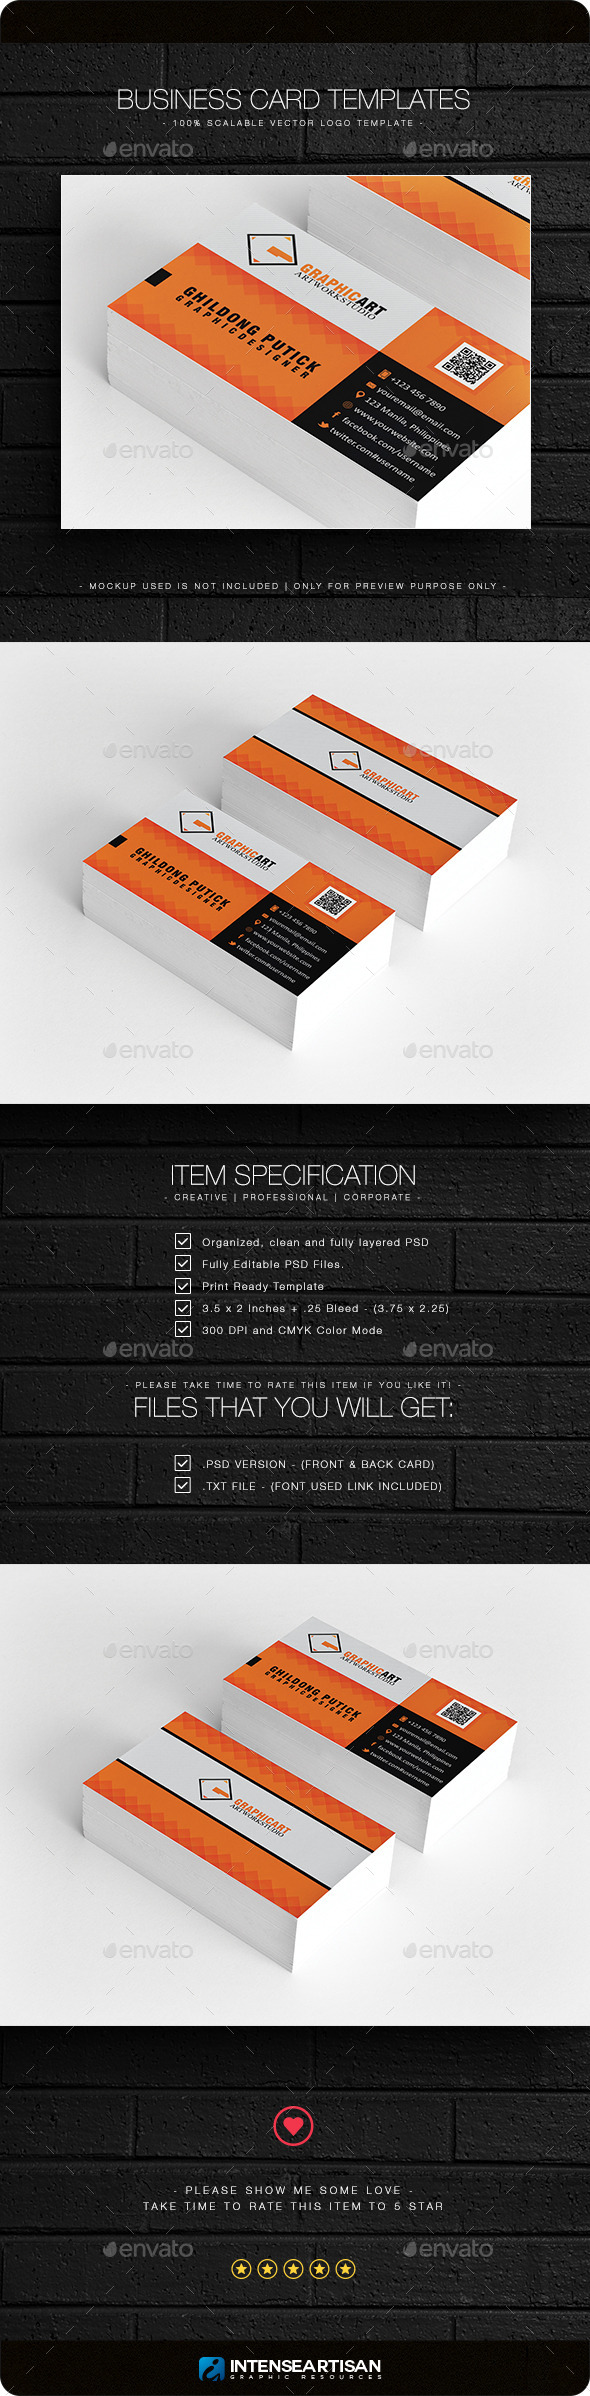 Business Card V.5 - Business Cards Print Templates